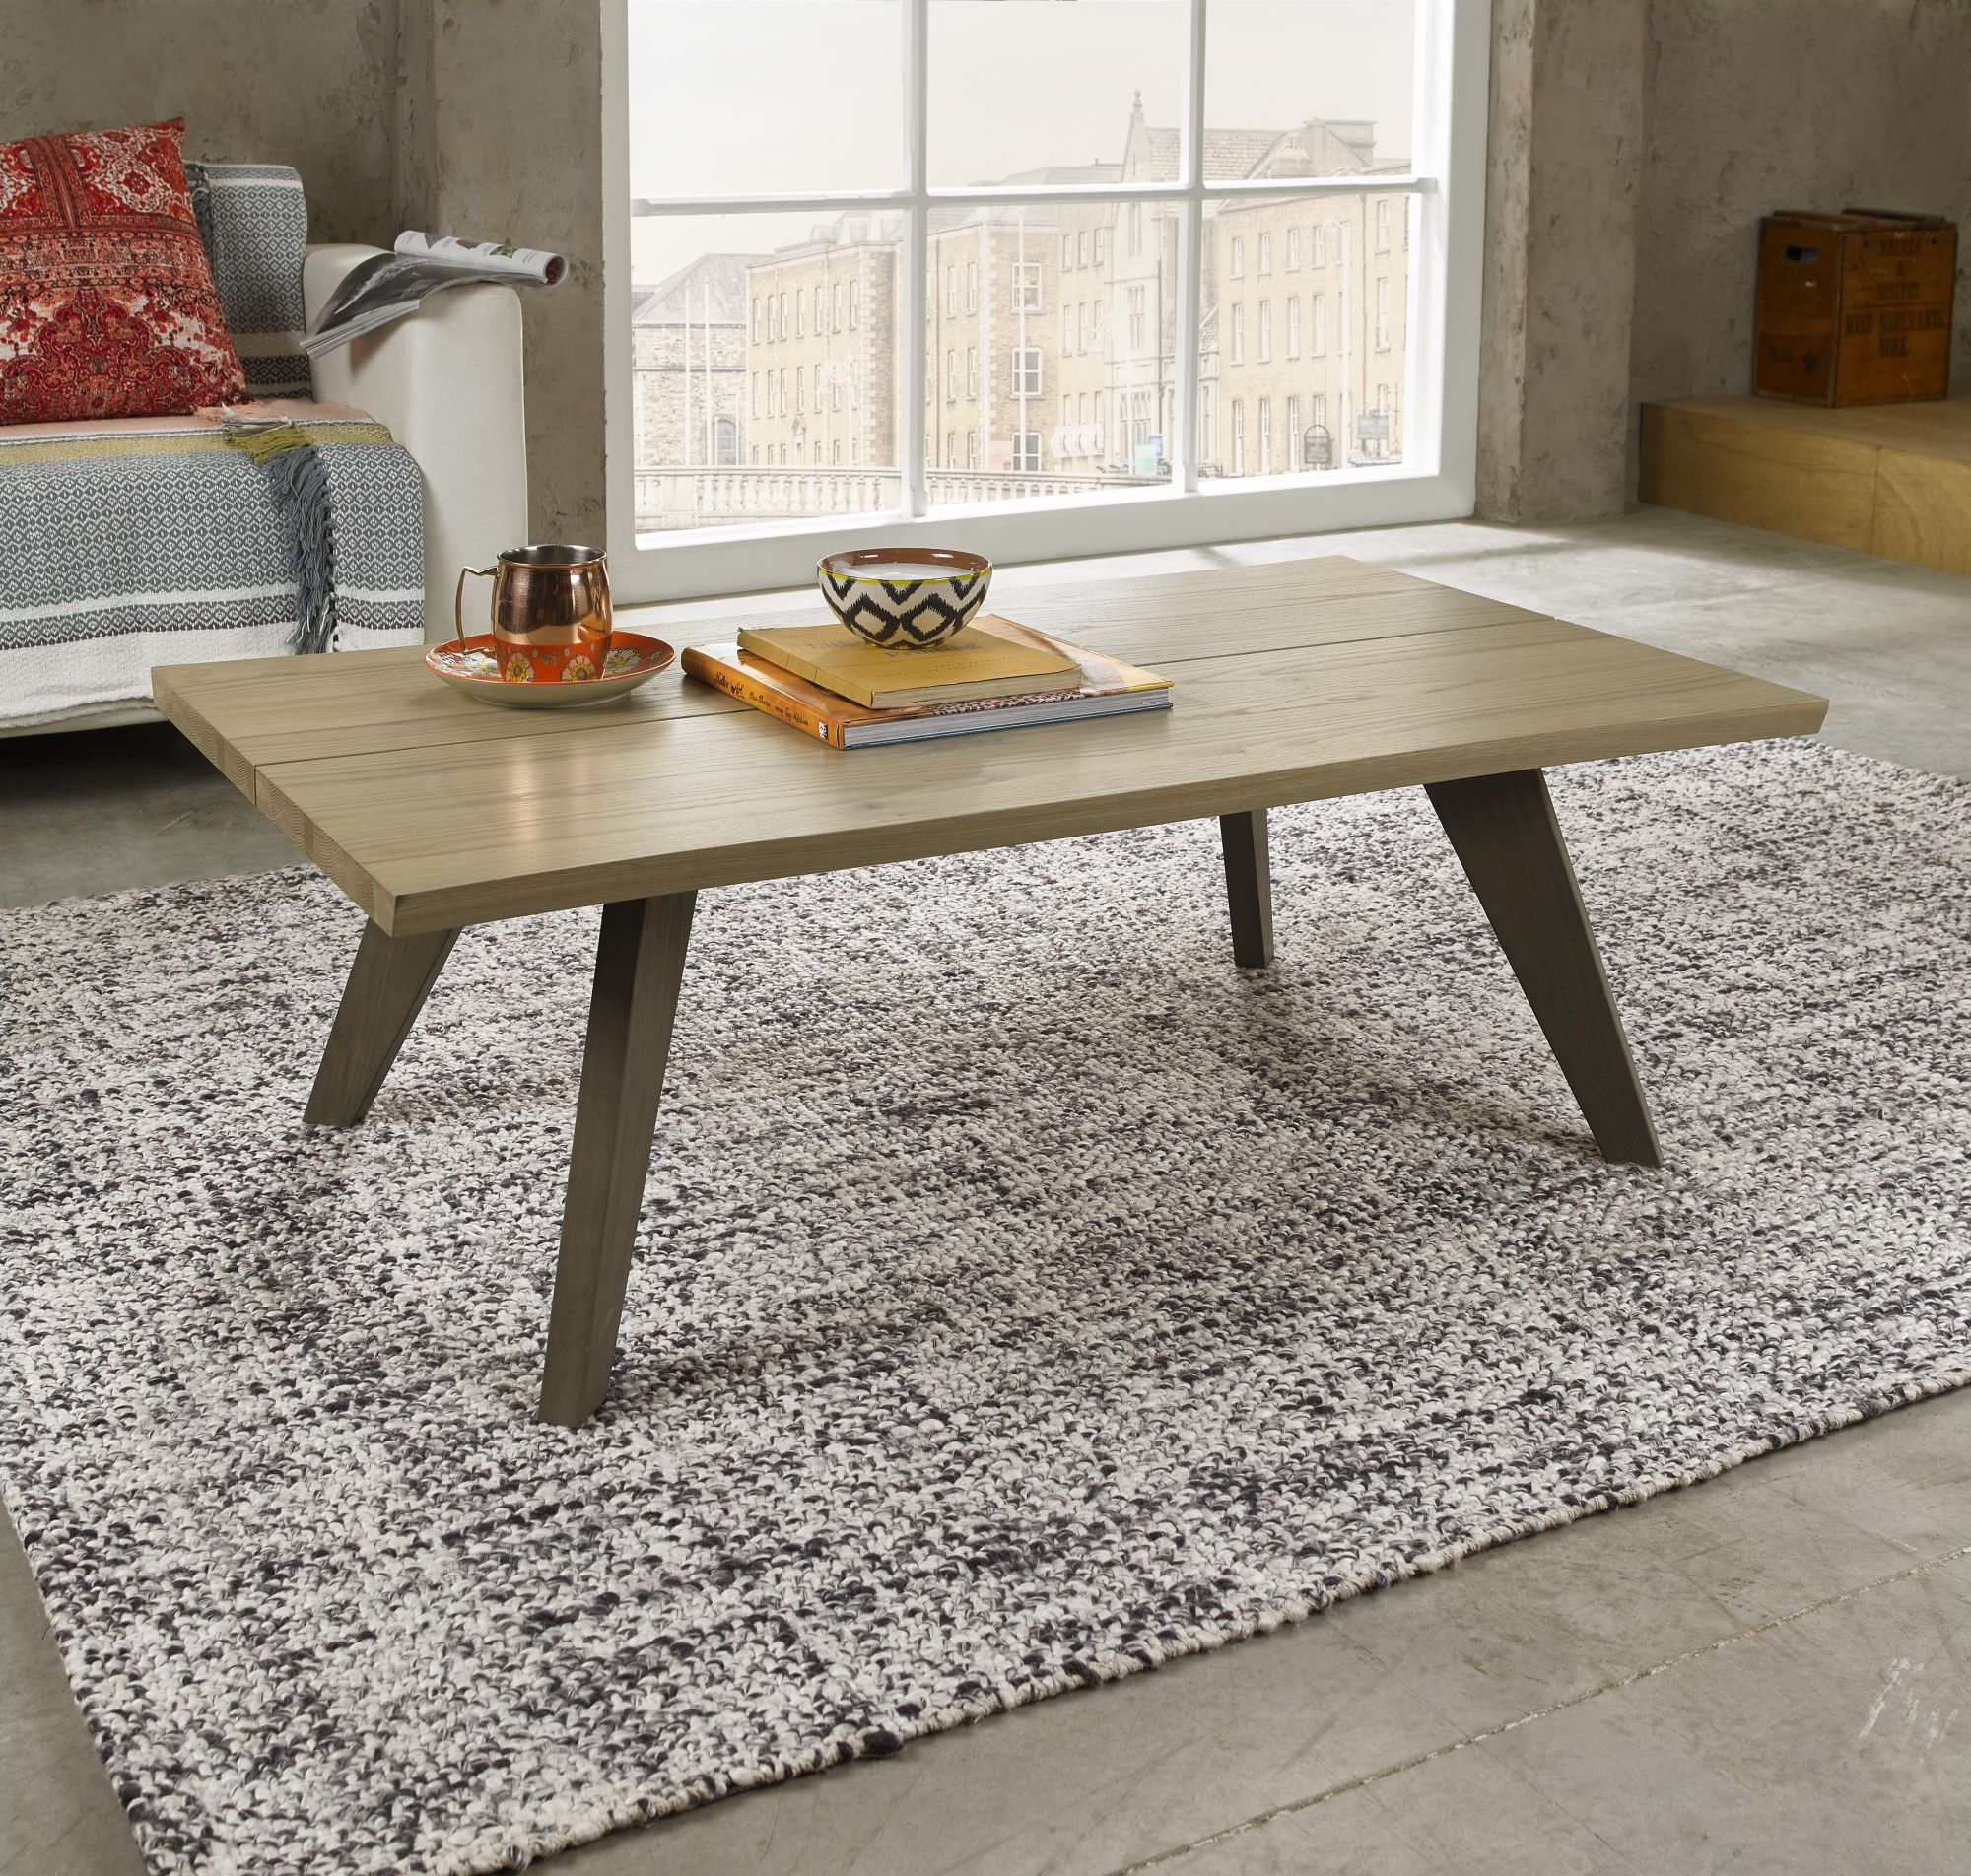 CARELL COFFEE TABLE - L121cm x D70cm x H40cm